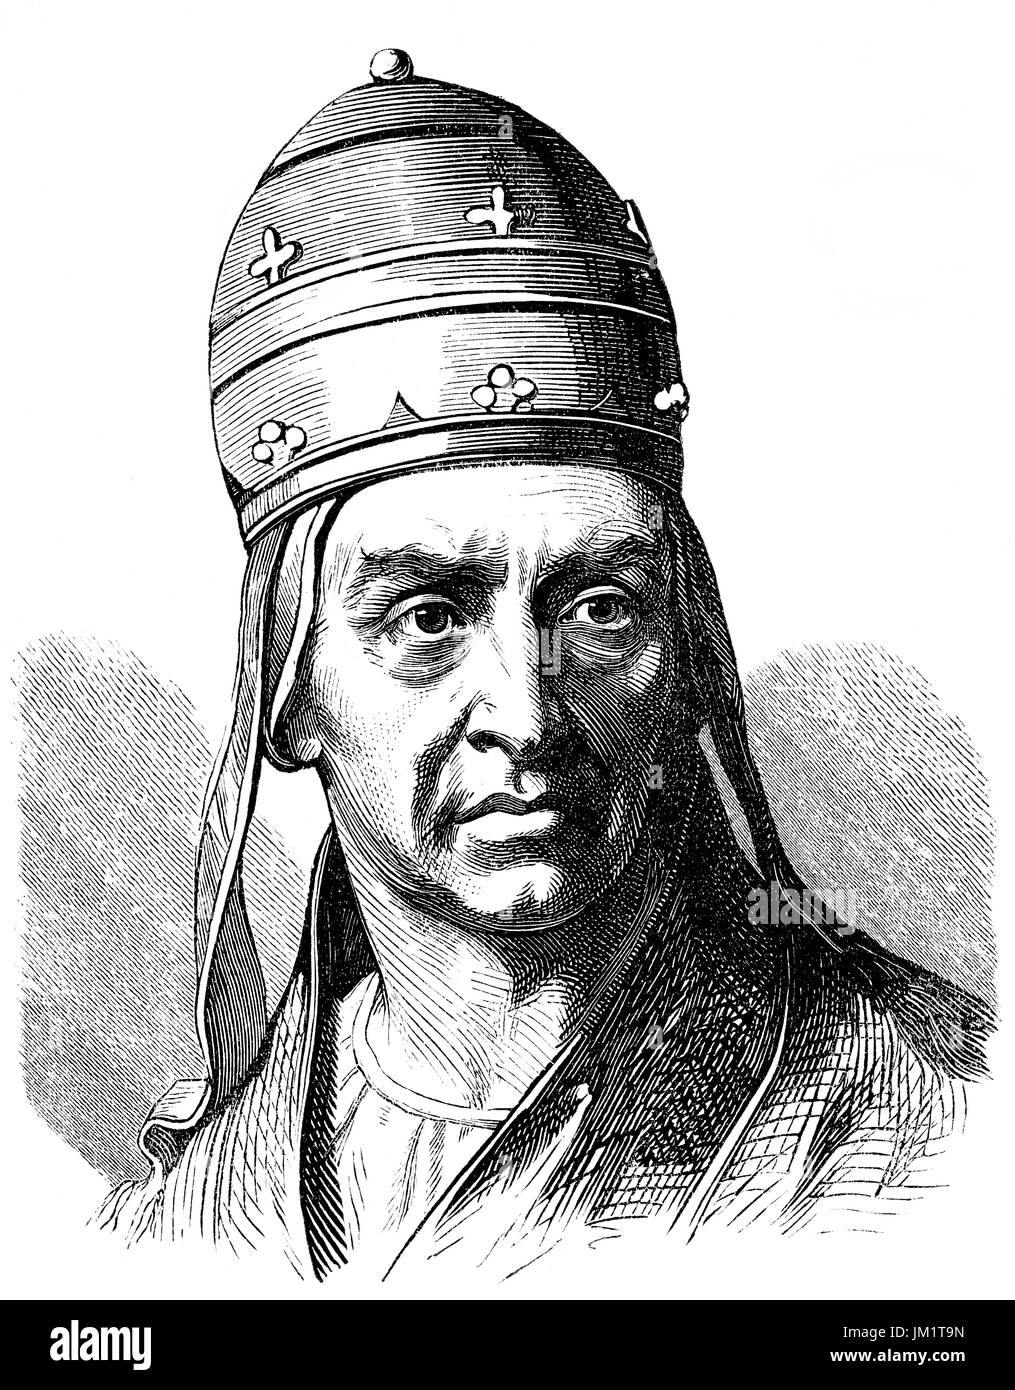 Pope Adrian IV, born Nicholas Breakspear; c. 1100 – 1 September 1159, was Pope from 4 December 1154 to his death - Stock Image